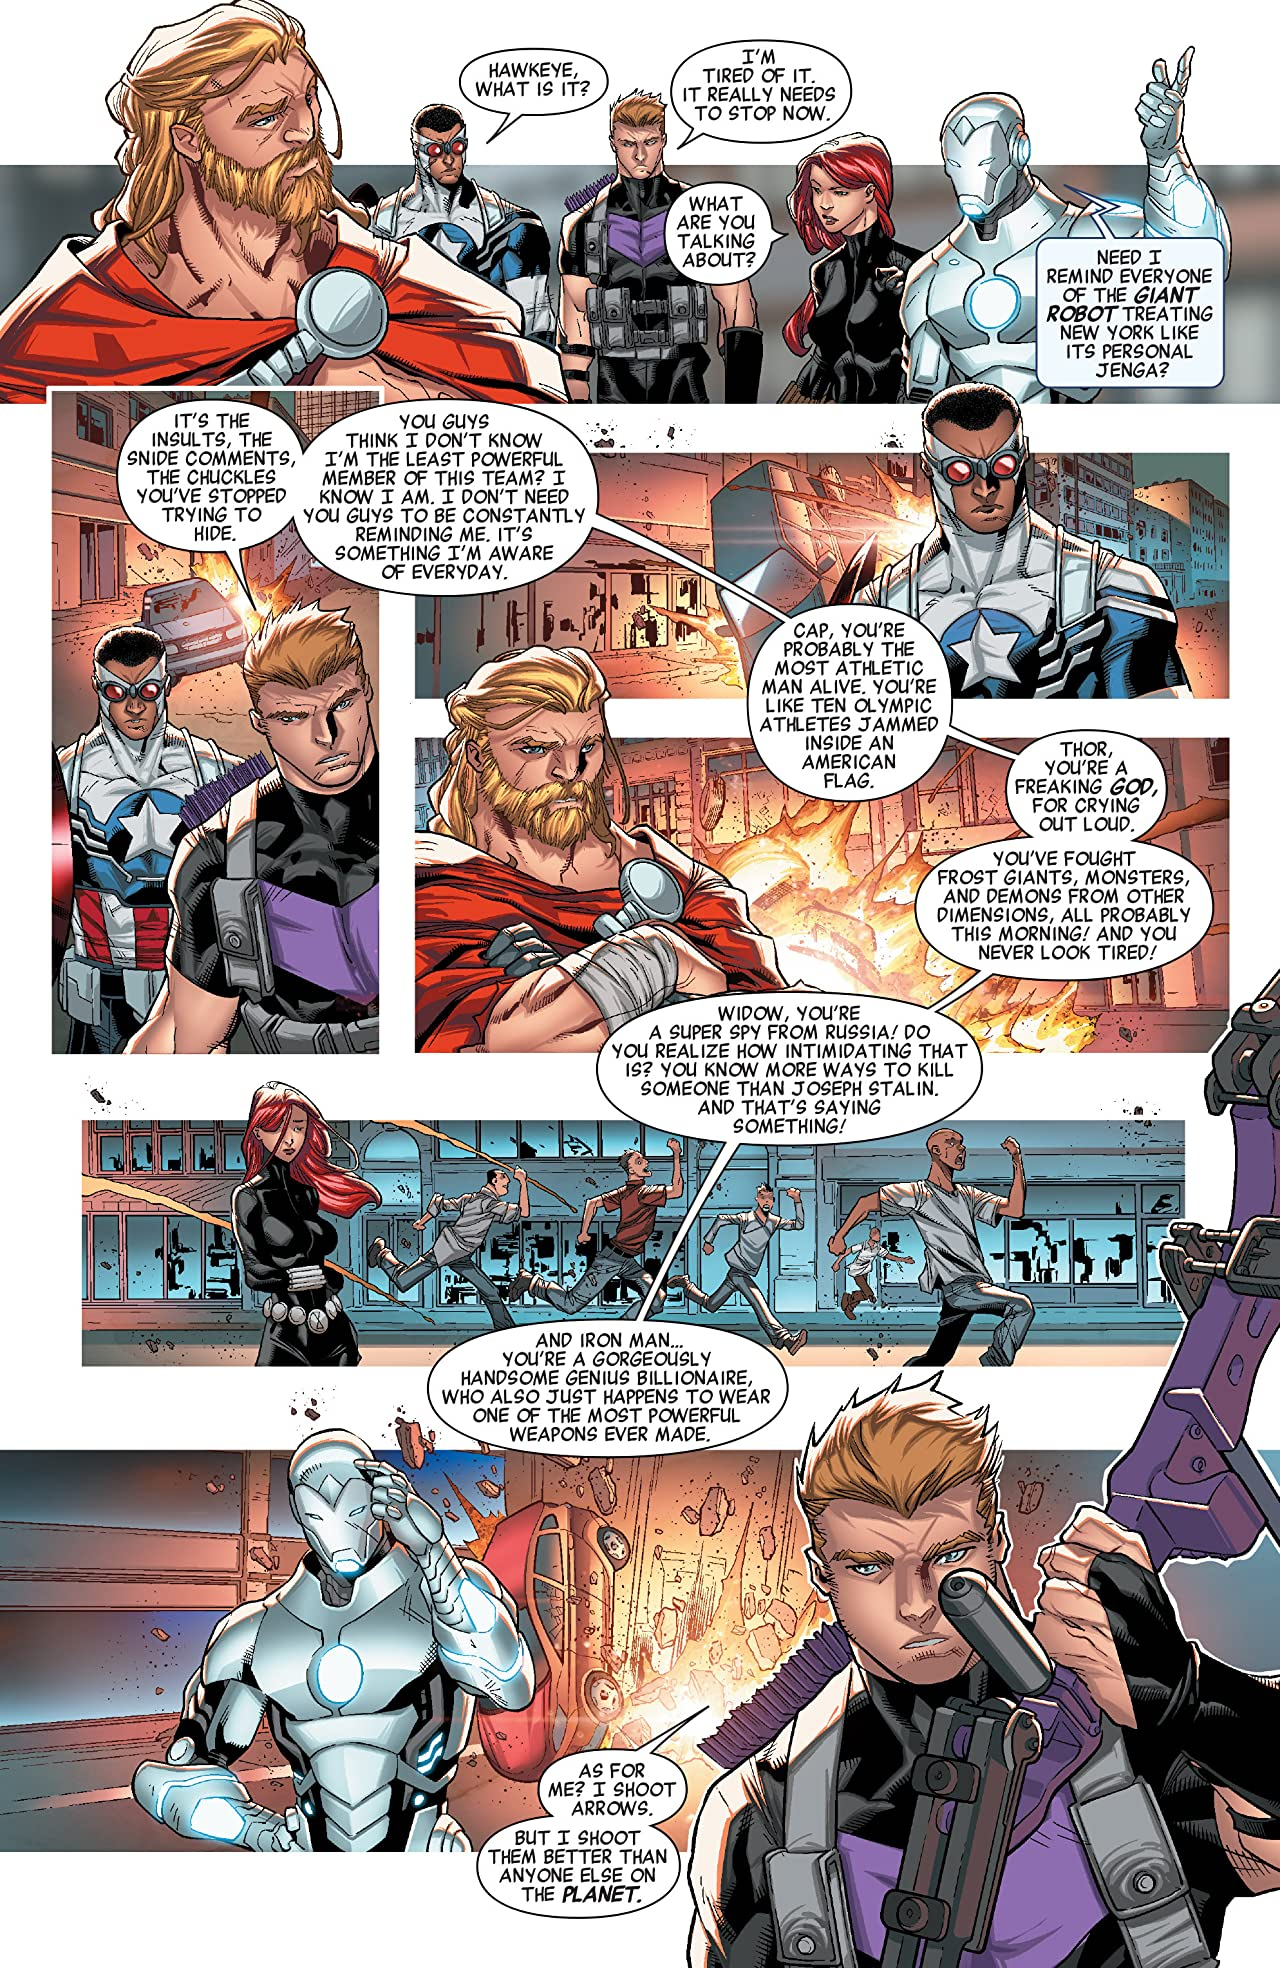 Avengers: No More Bullying #1